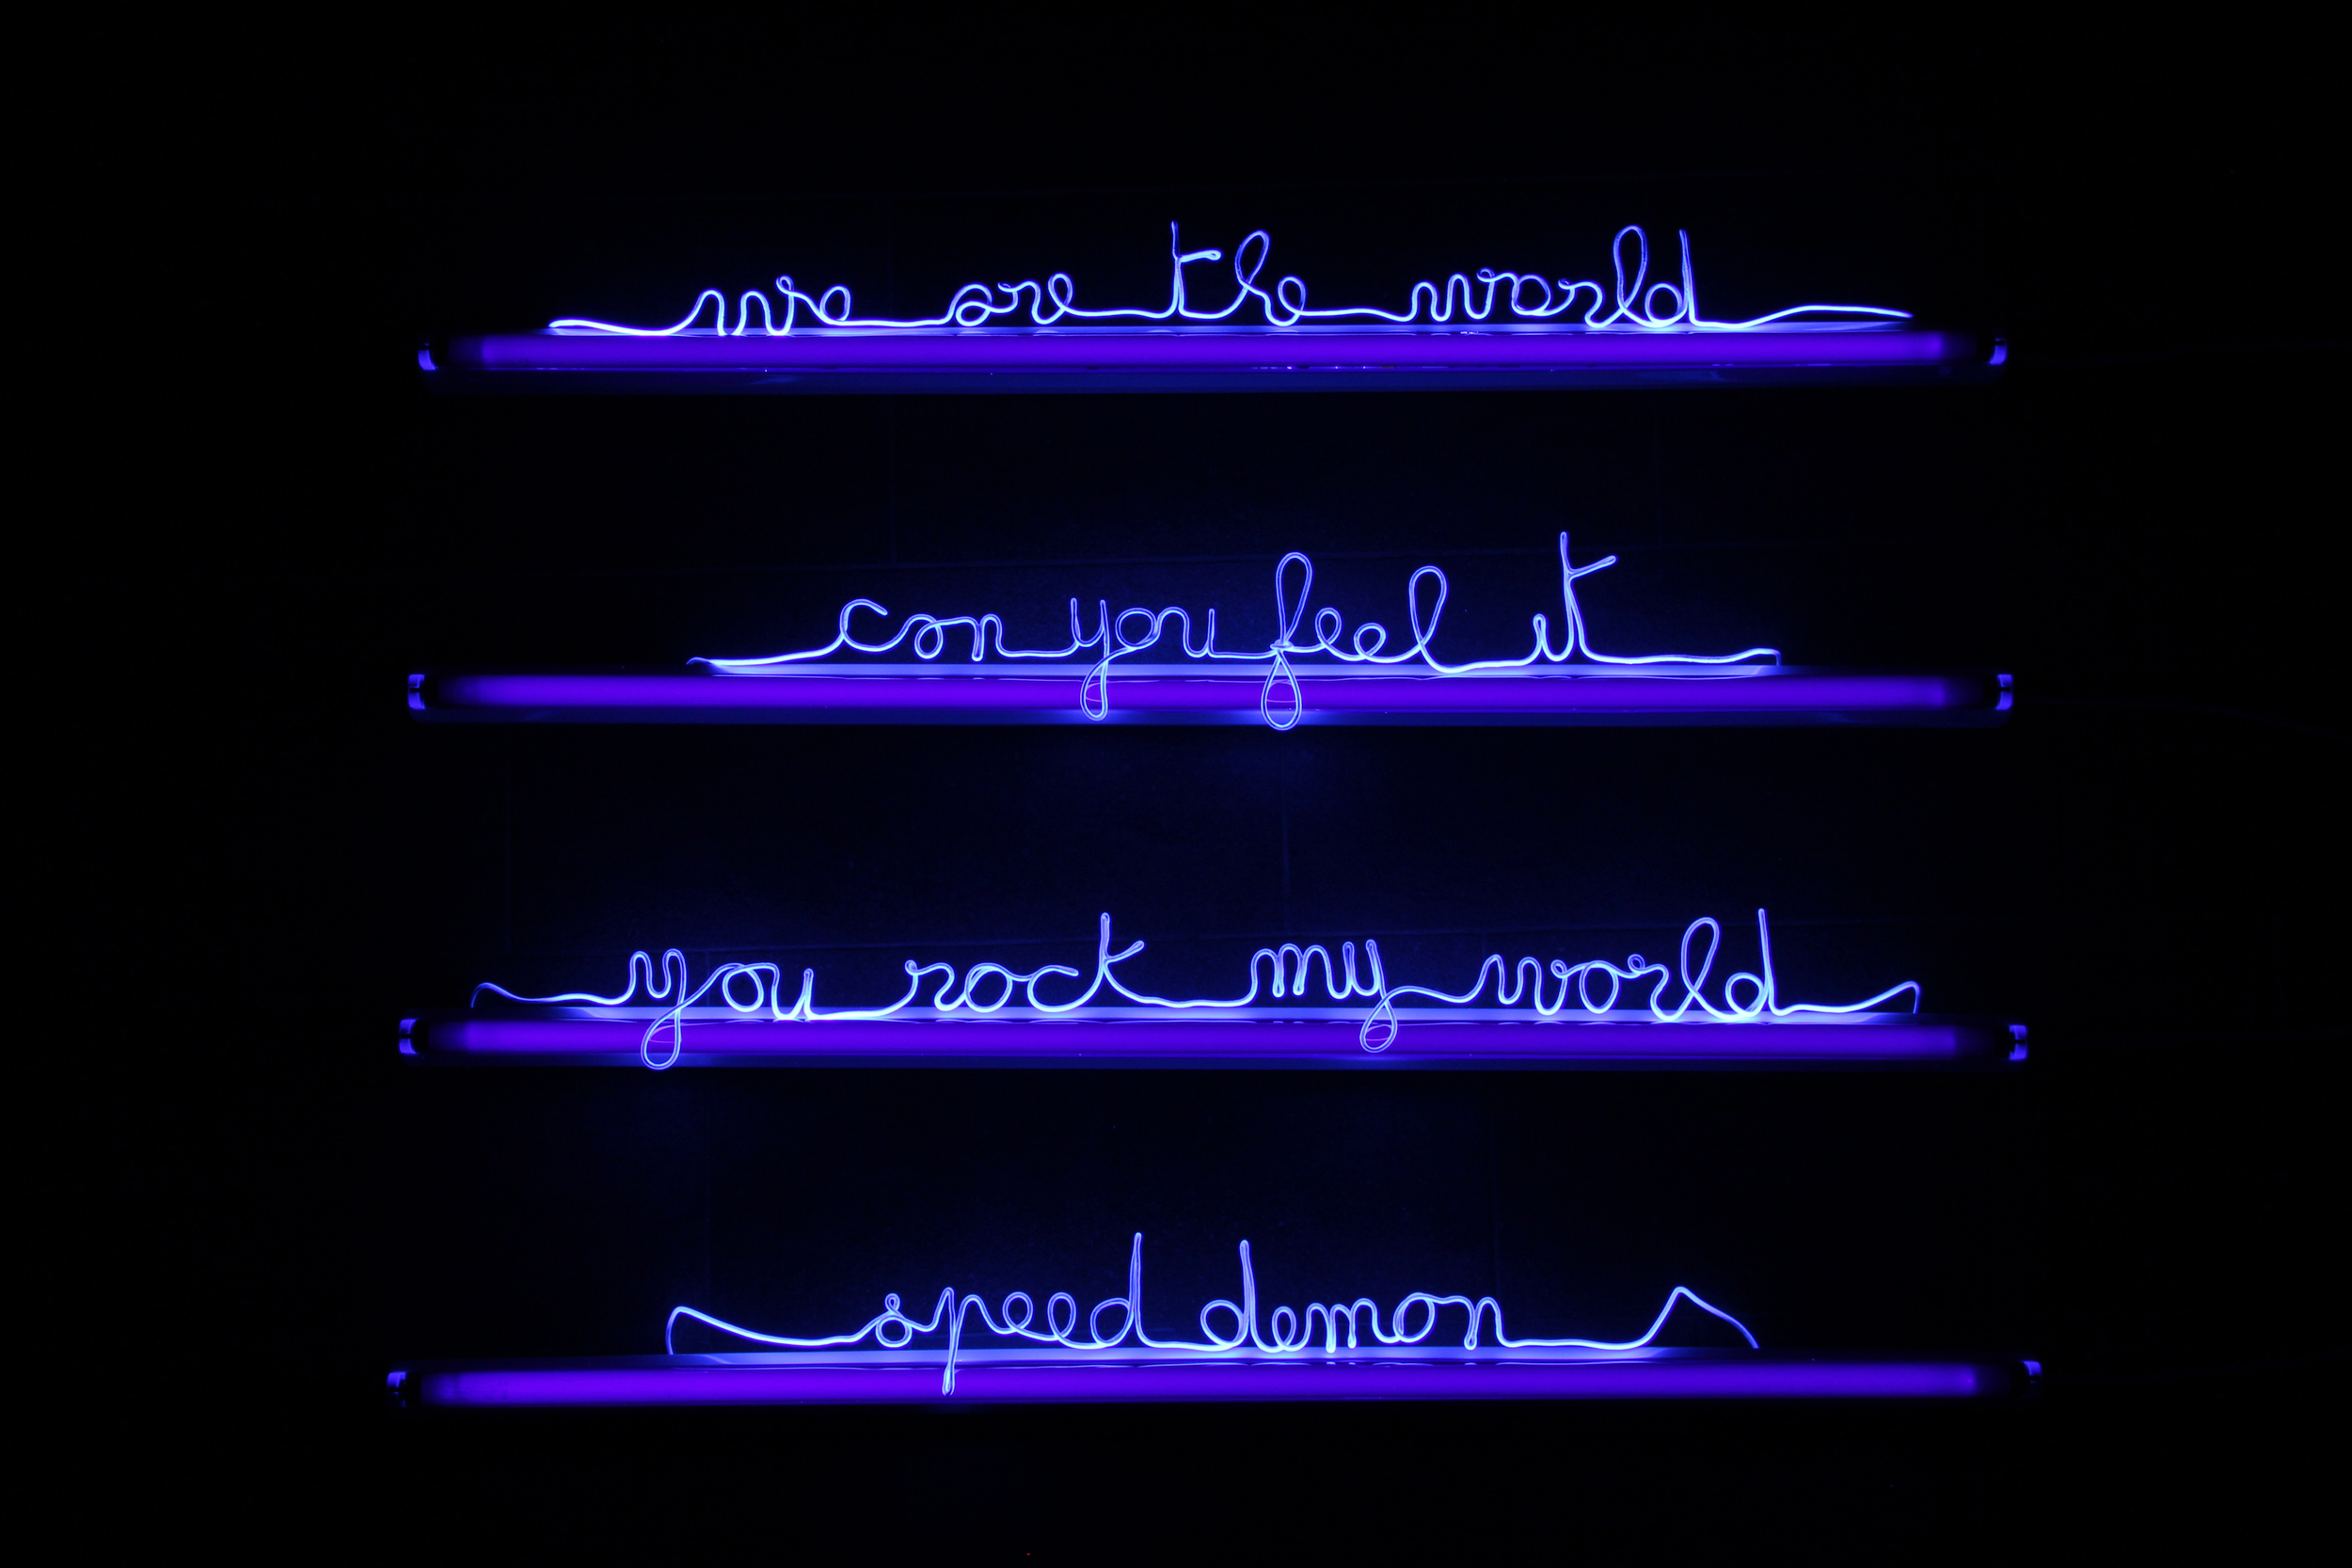 Florence Cantié Kramer, Hommage, Neon , 2012 - Courtesy the artist and Rabouan Moussion Gallery Paris